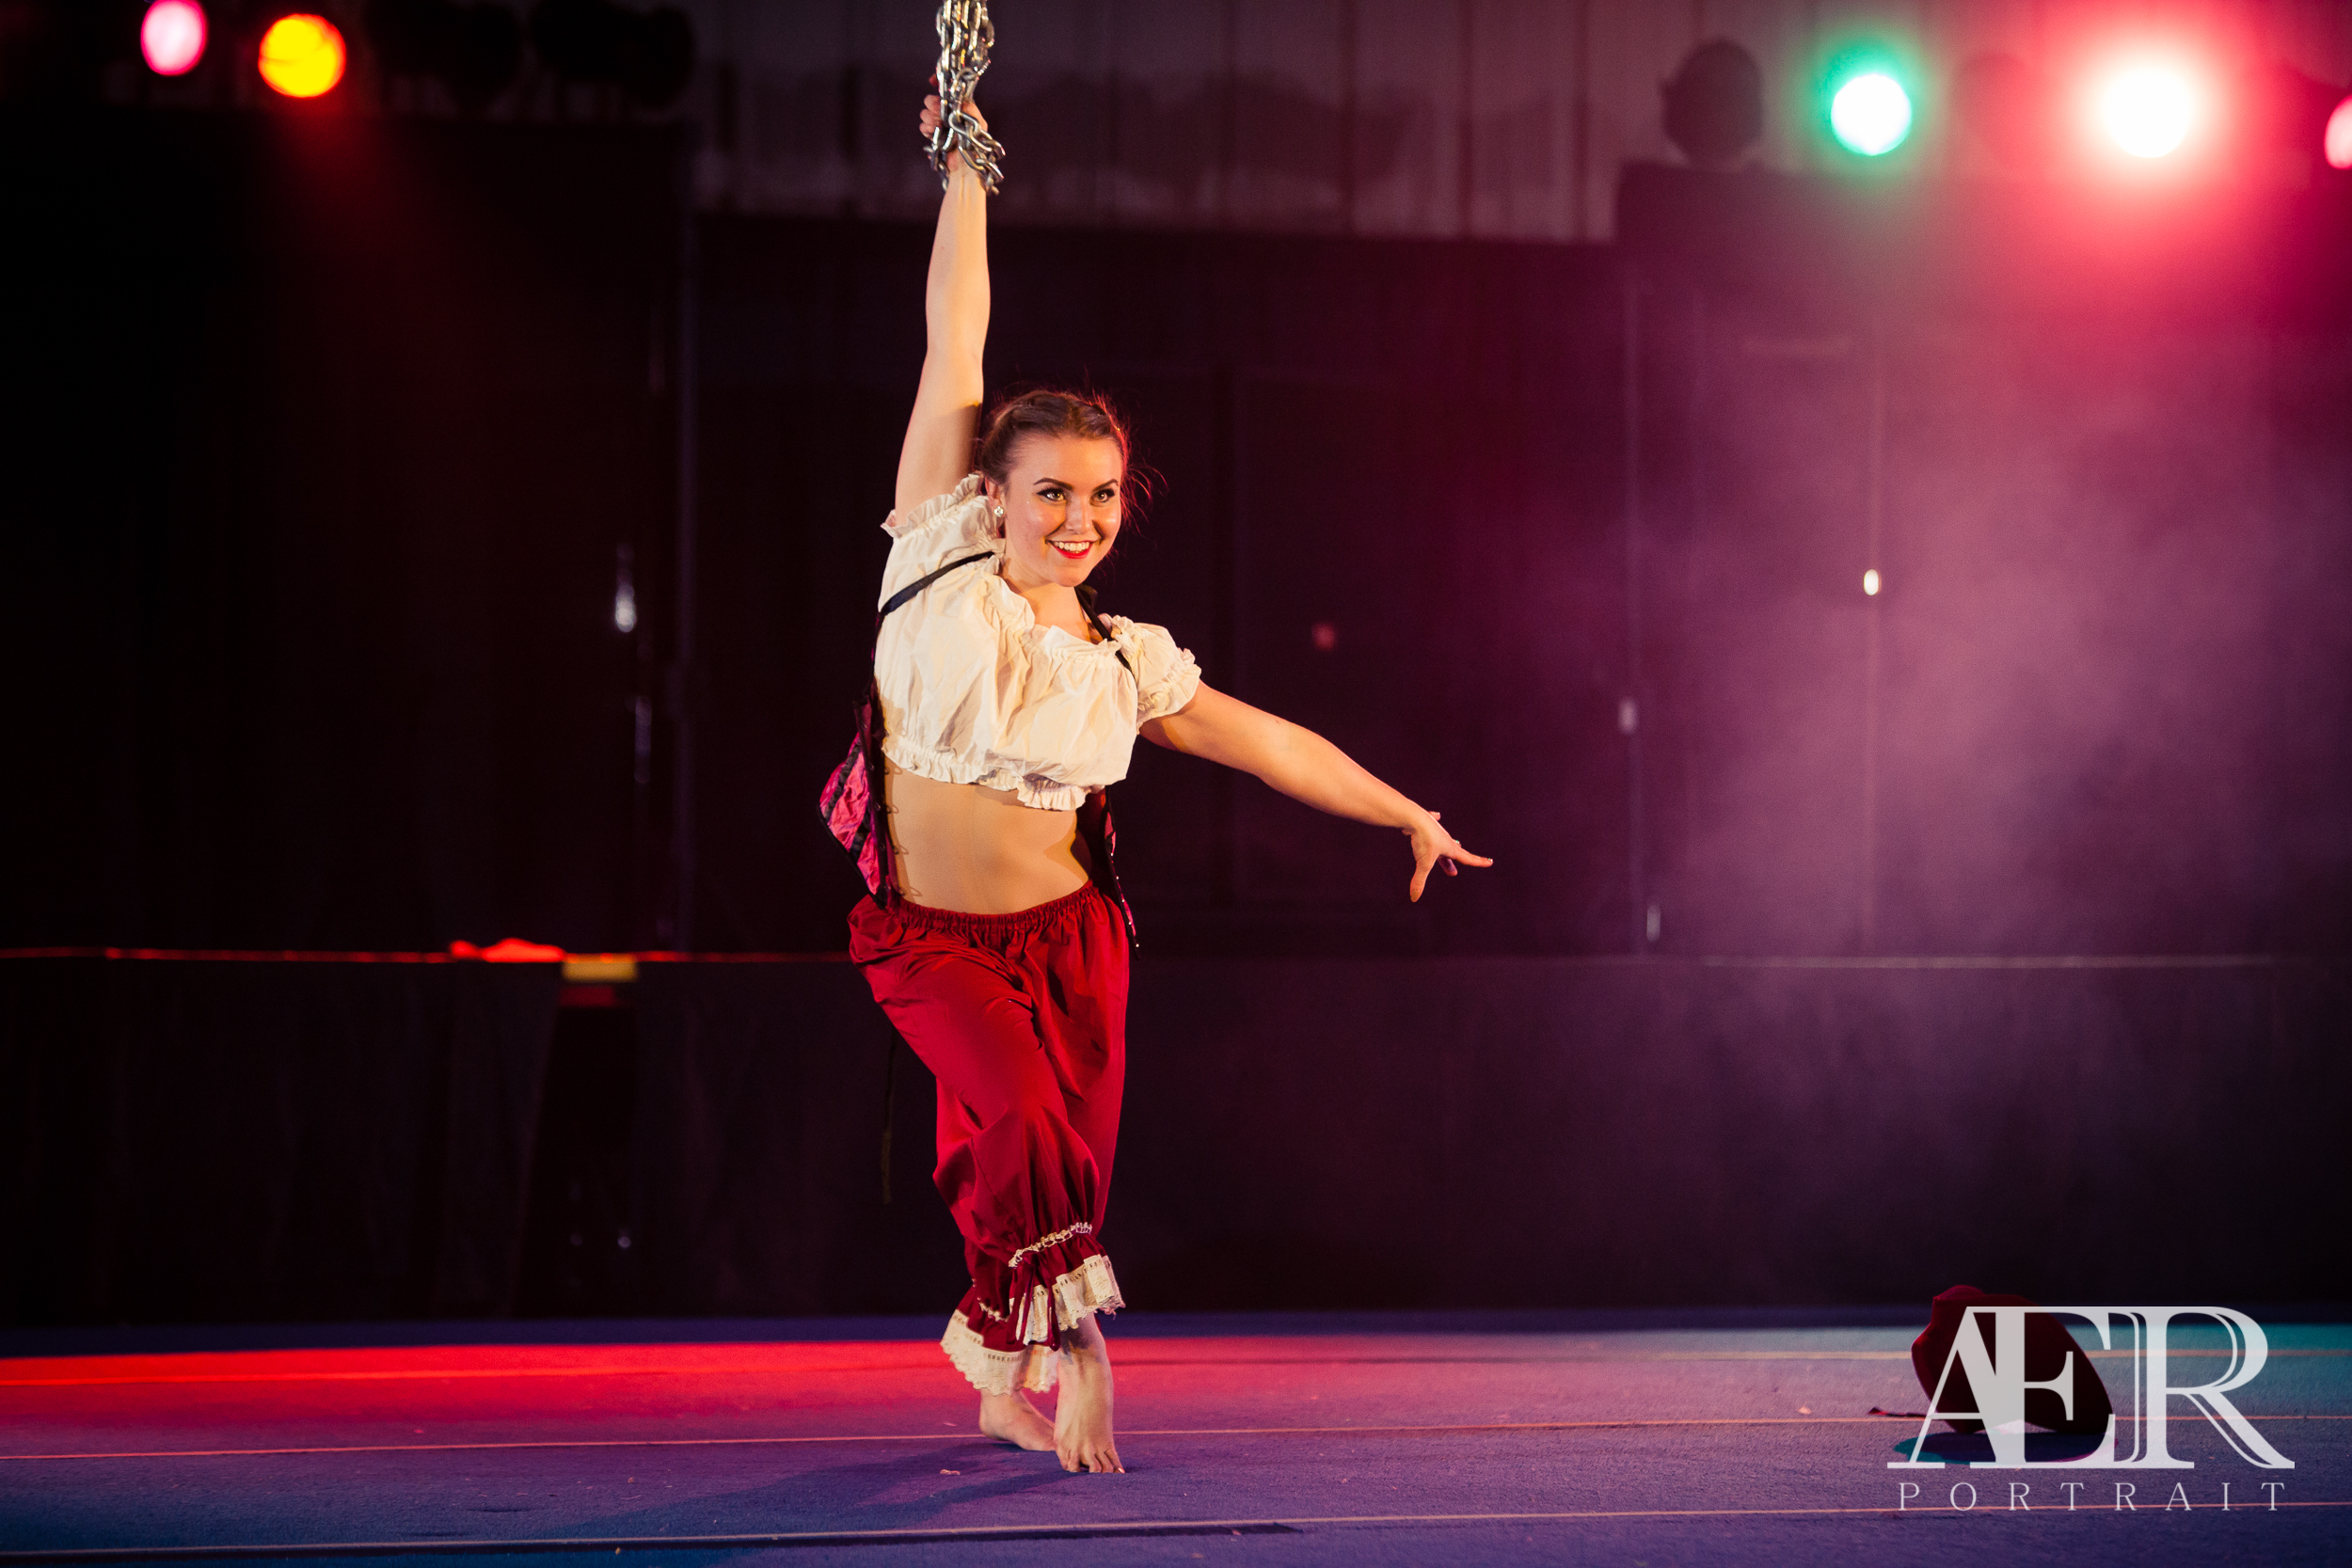 Louisville Performing Arts Photography - Turners Circus - AER Portrait 17